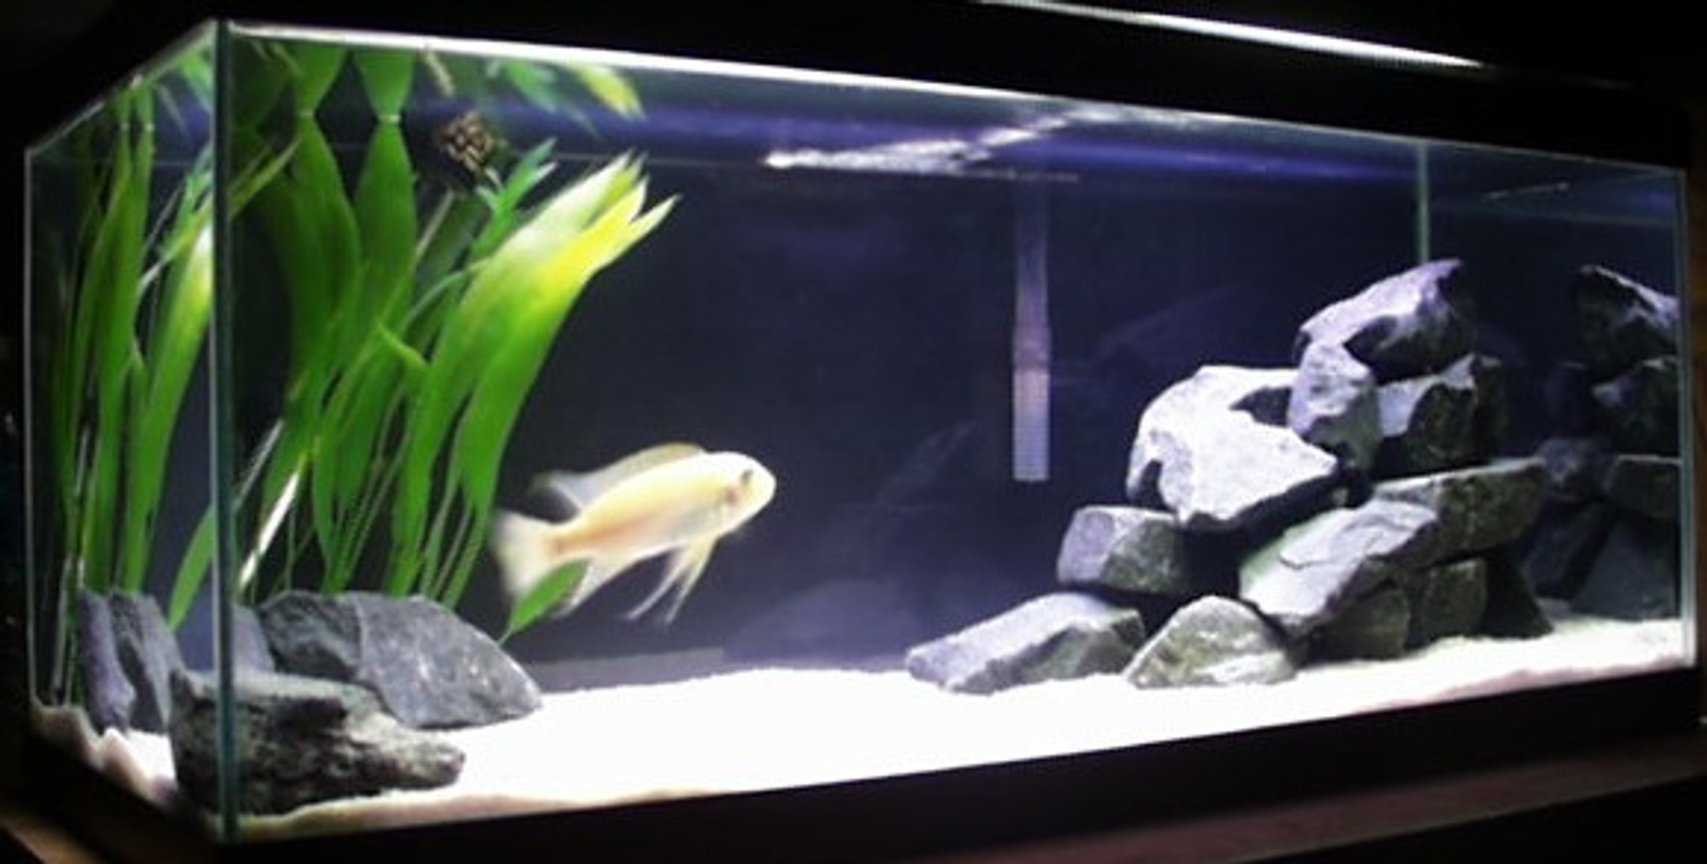 freshwater fish tank (mostly fish and non-living decorations) - This is my 20 gallon cichlid tank.